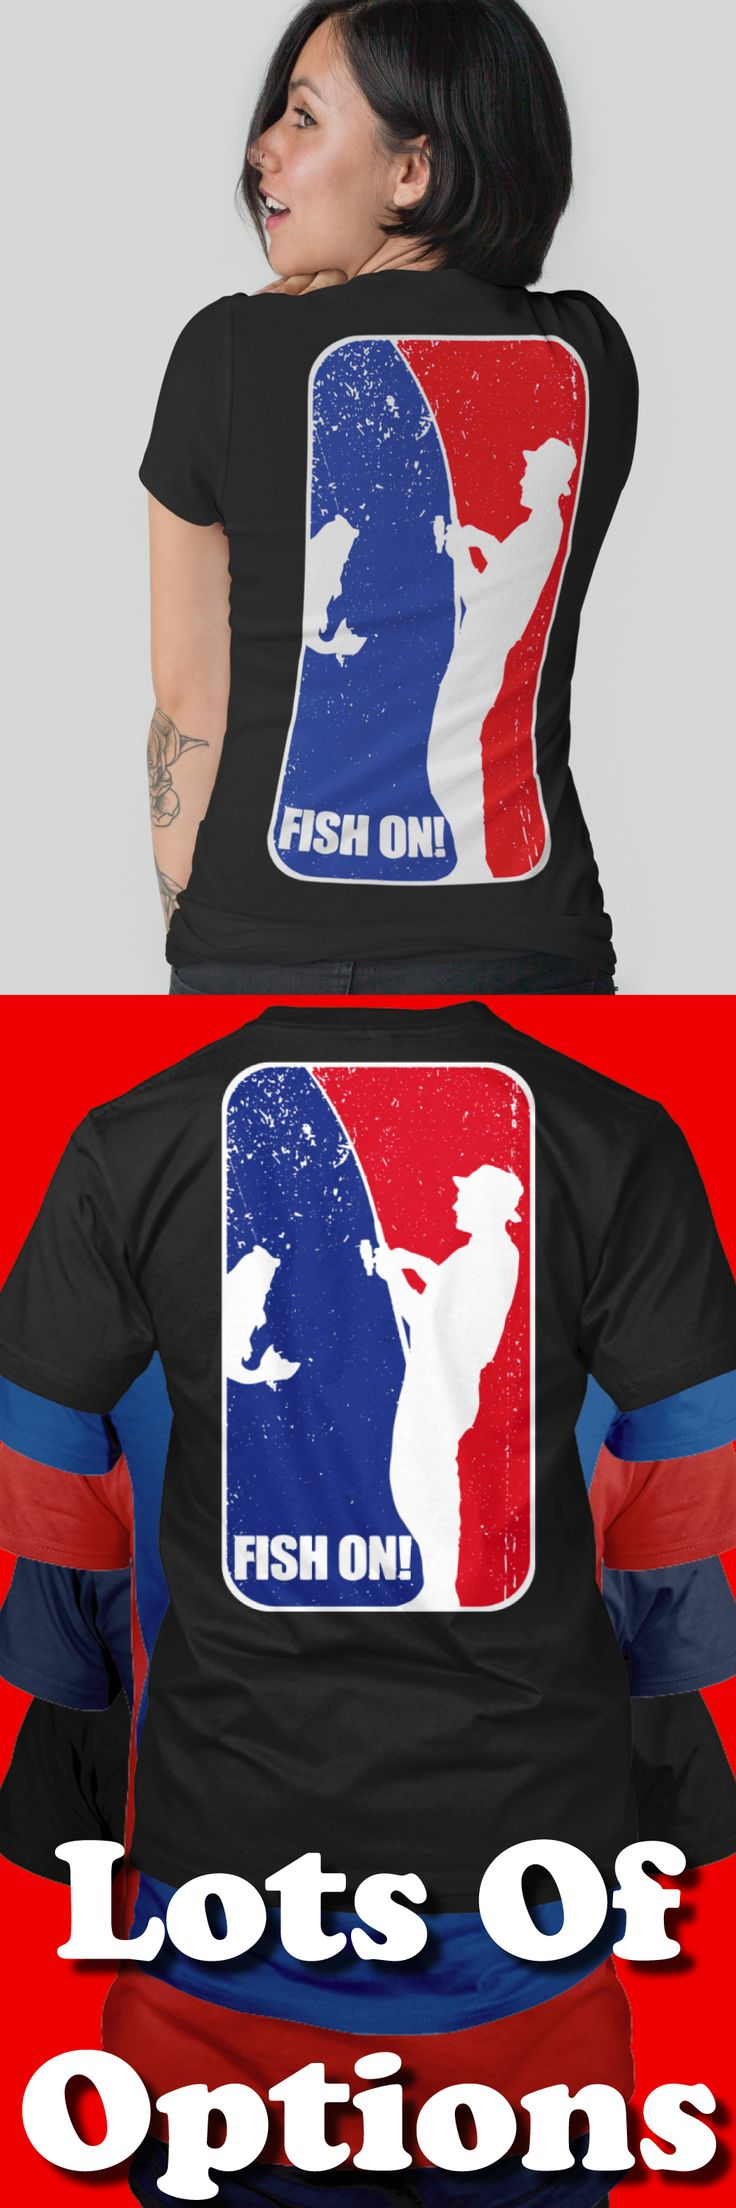 Fishing Shirts: Do You Fish? Fish On! Great Fishing Gift! Lots Of Sizes & Colors. Like Fly Fishing, Net Fishing and Bass Fishing? Strict Limit Of 5 Shirts! Treat Yourself & Click Now! https://teespring.com/WP44-434